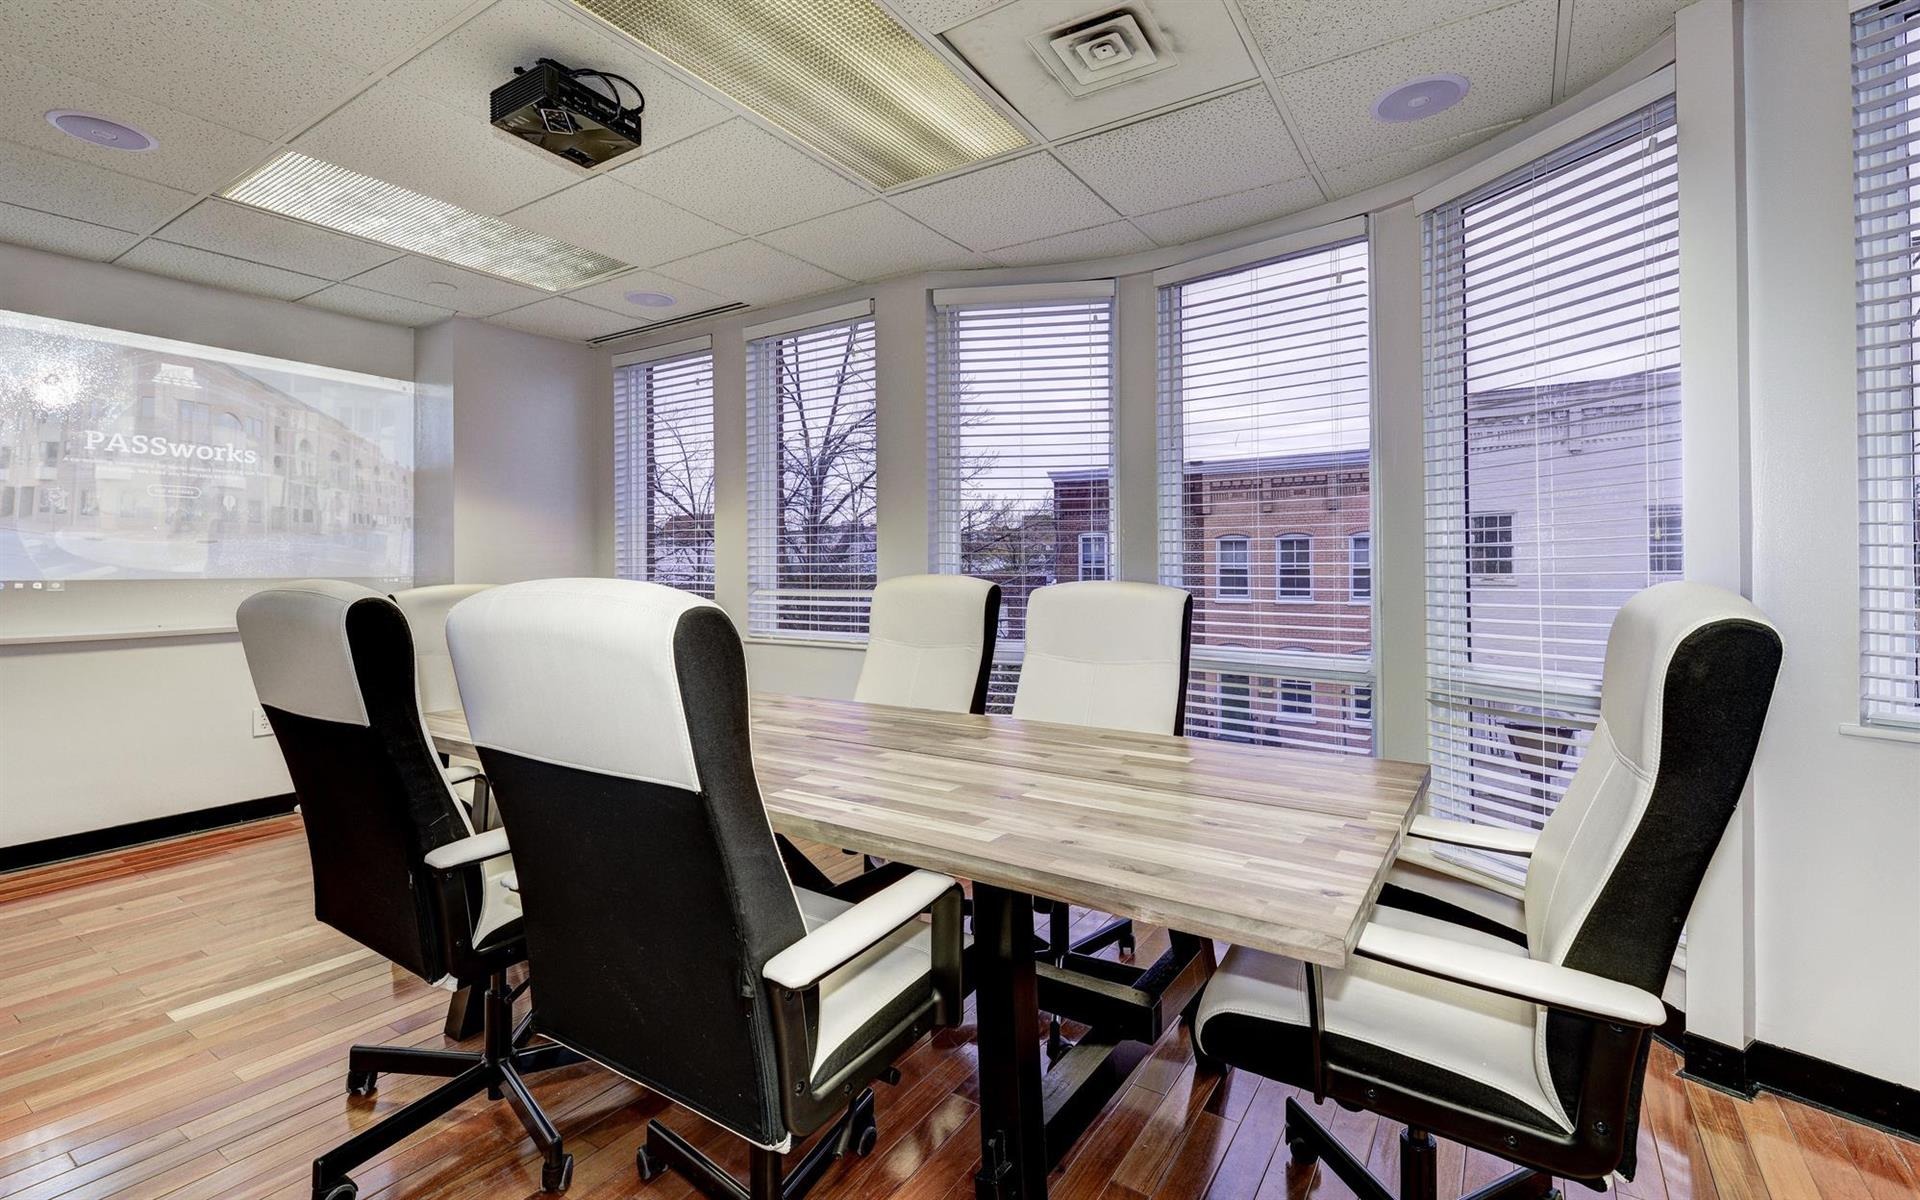 PASSworks Community - Conference Room